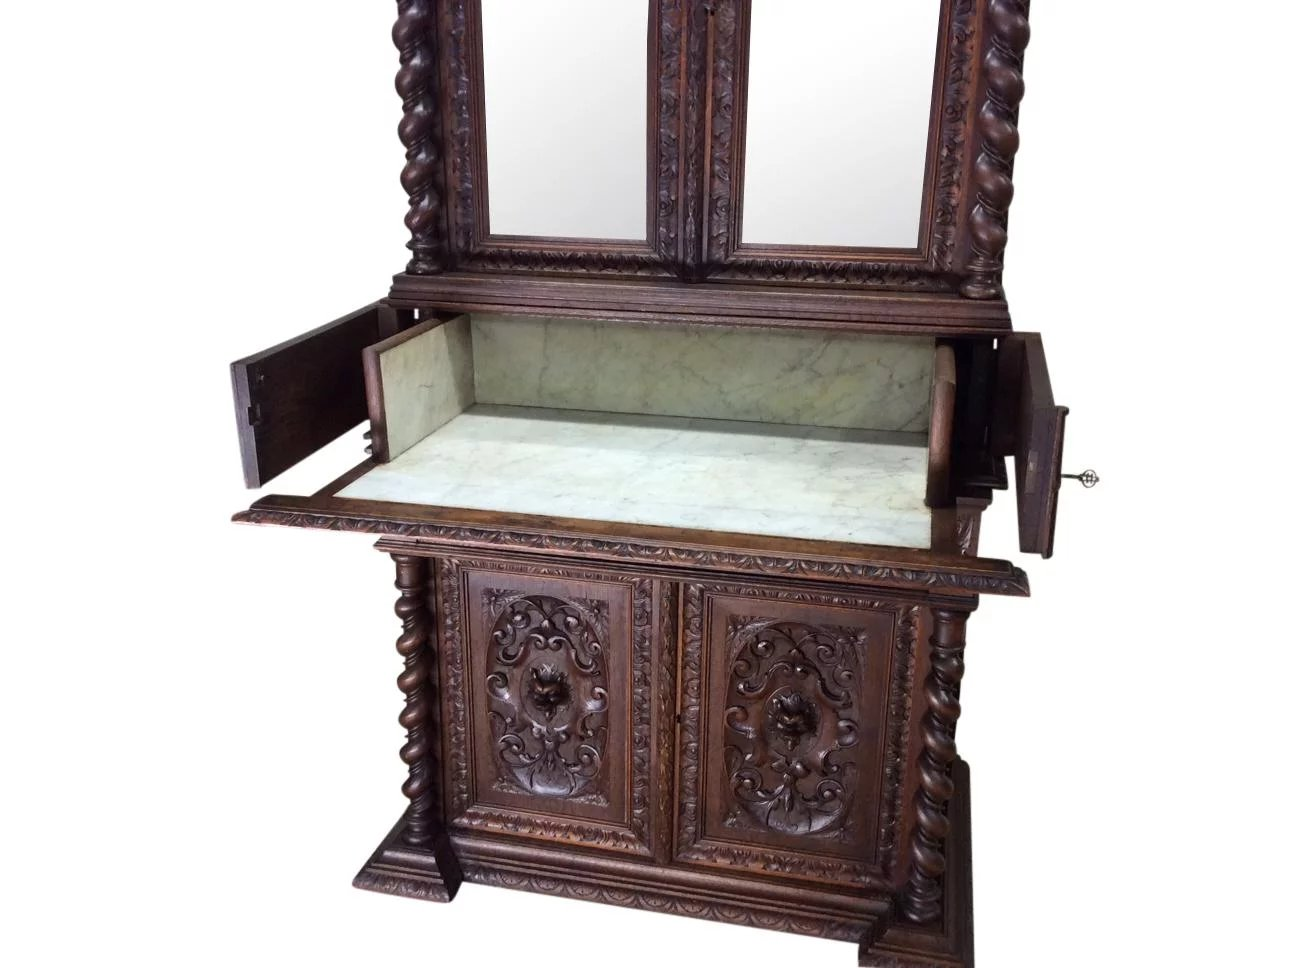 Antique French Hunt Bedroom Cabinet With Vanity/Desk, 19th